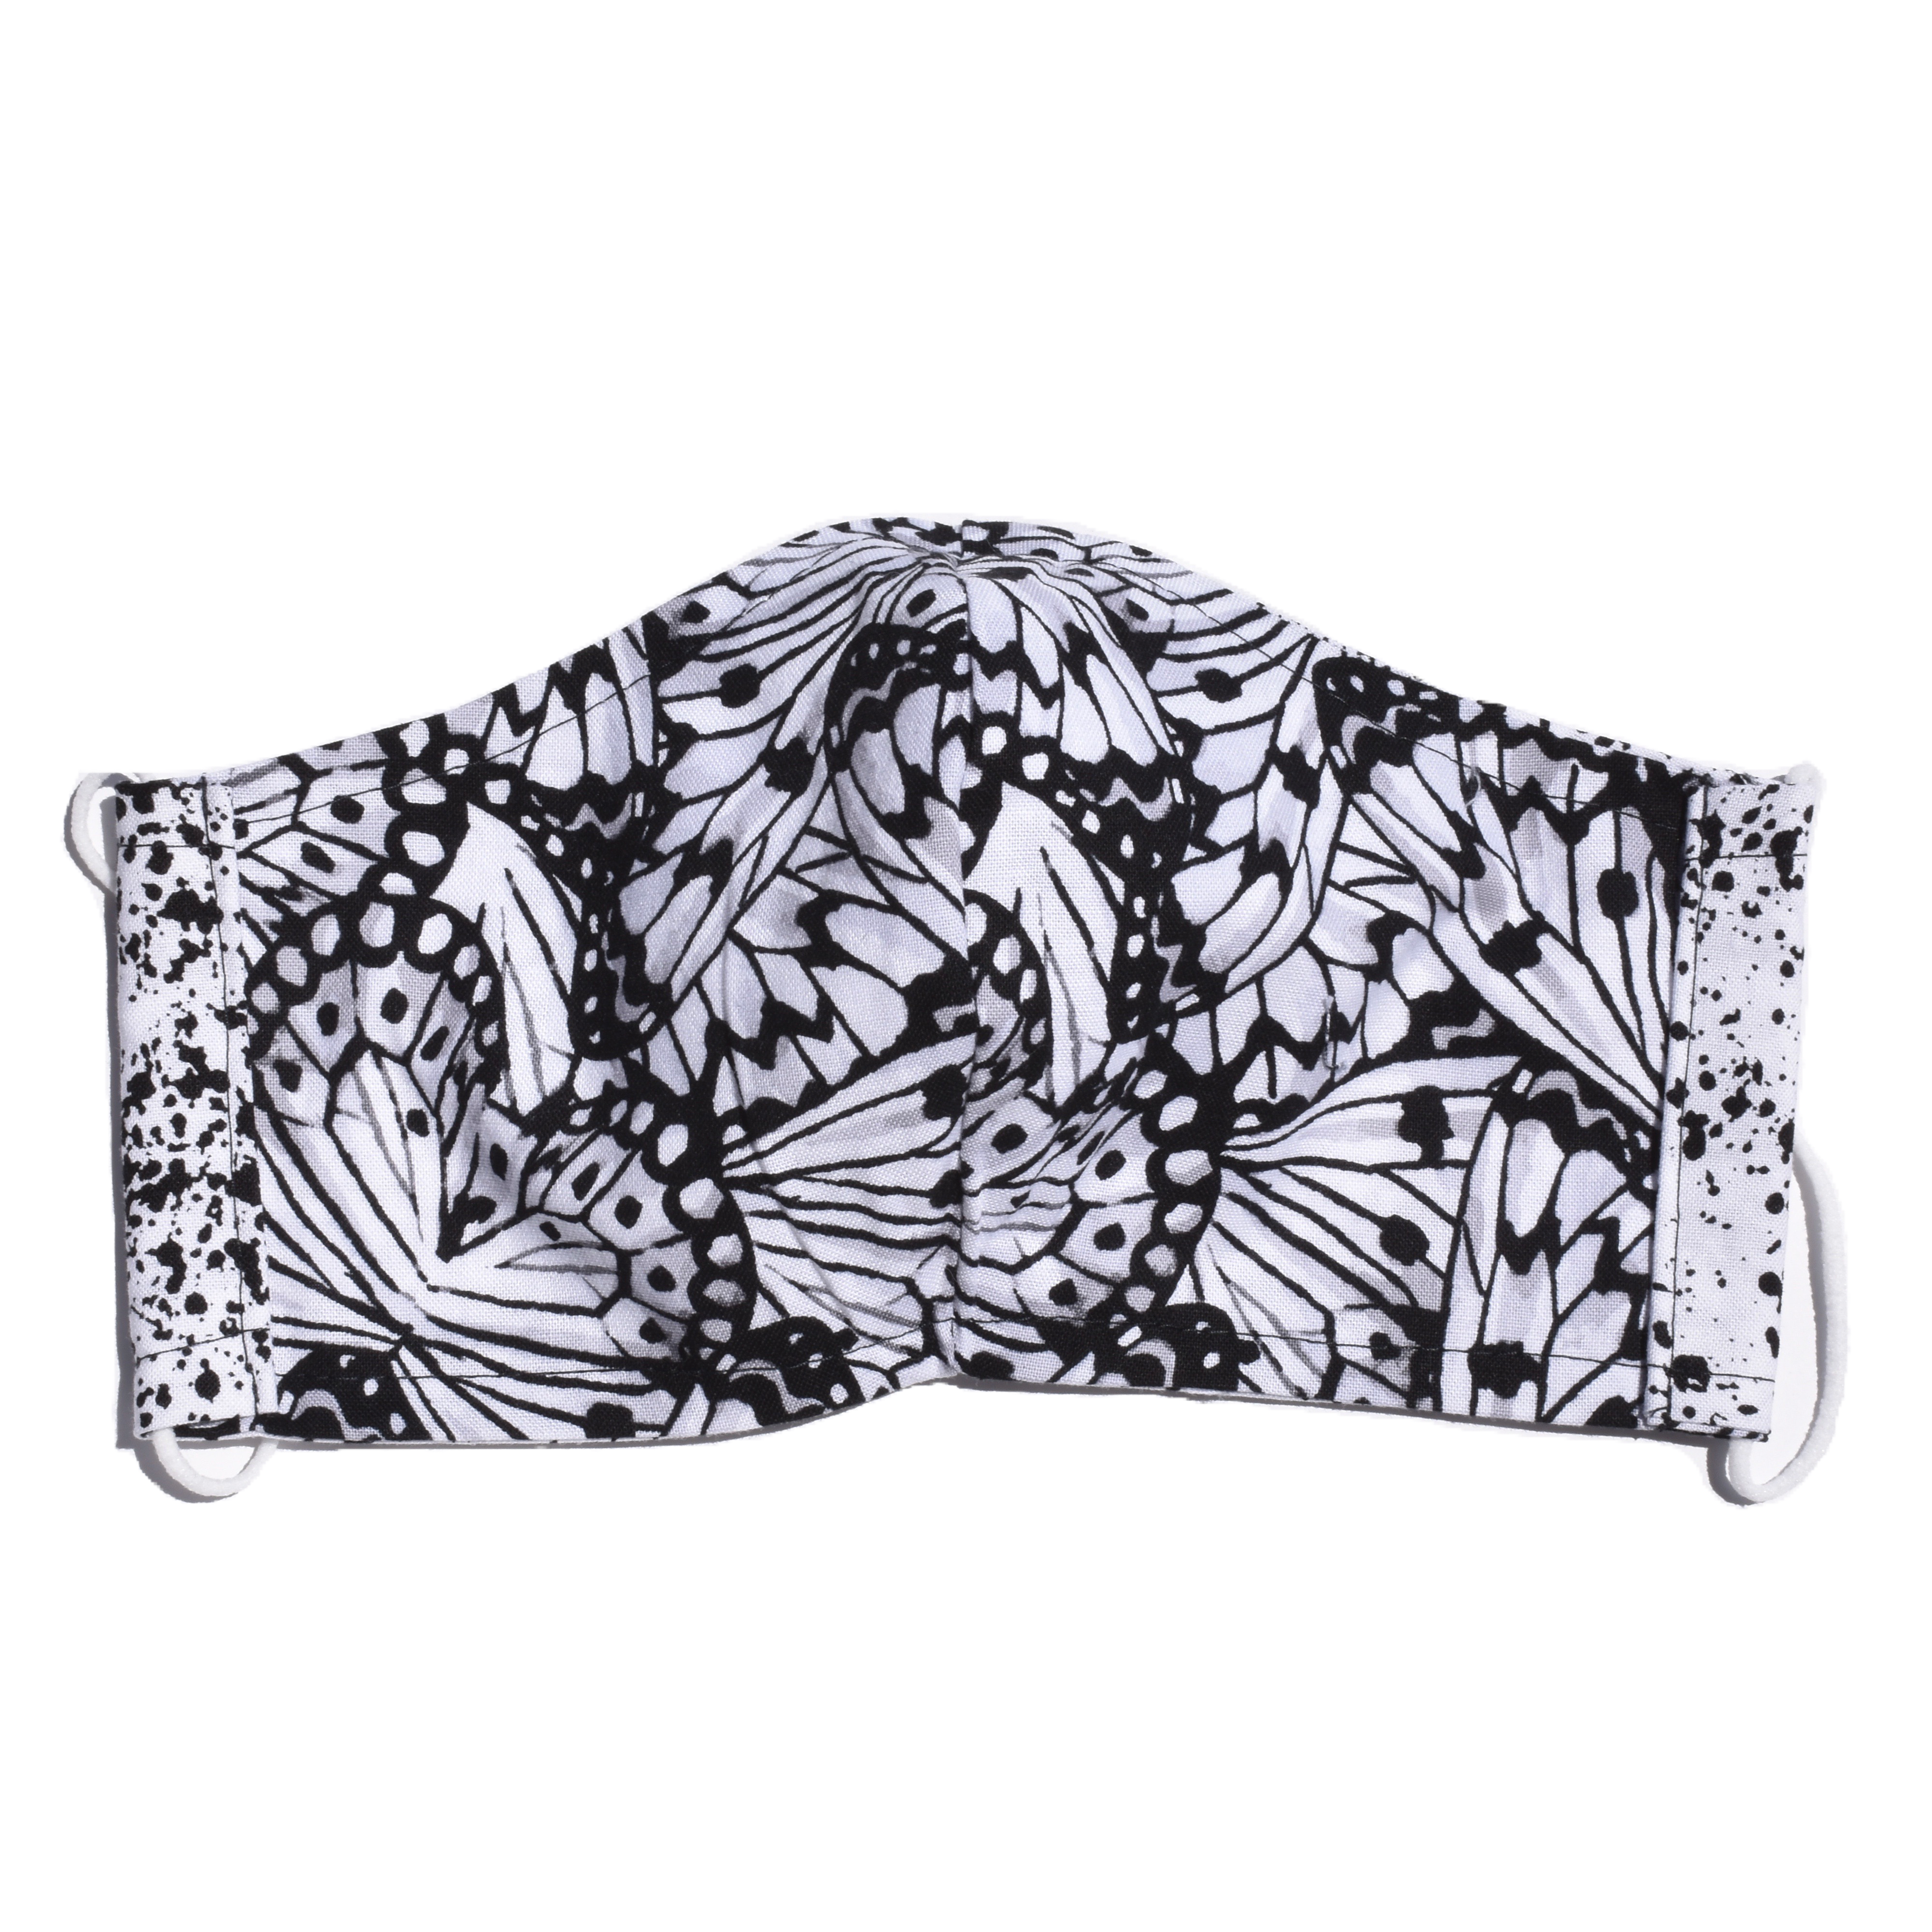 view of other side of face mask showing white material with black butterfly wings on inside.